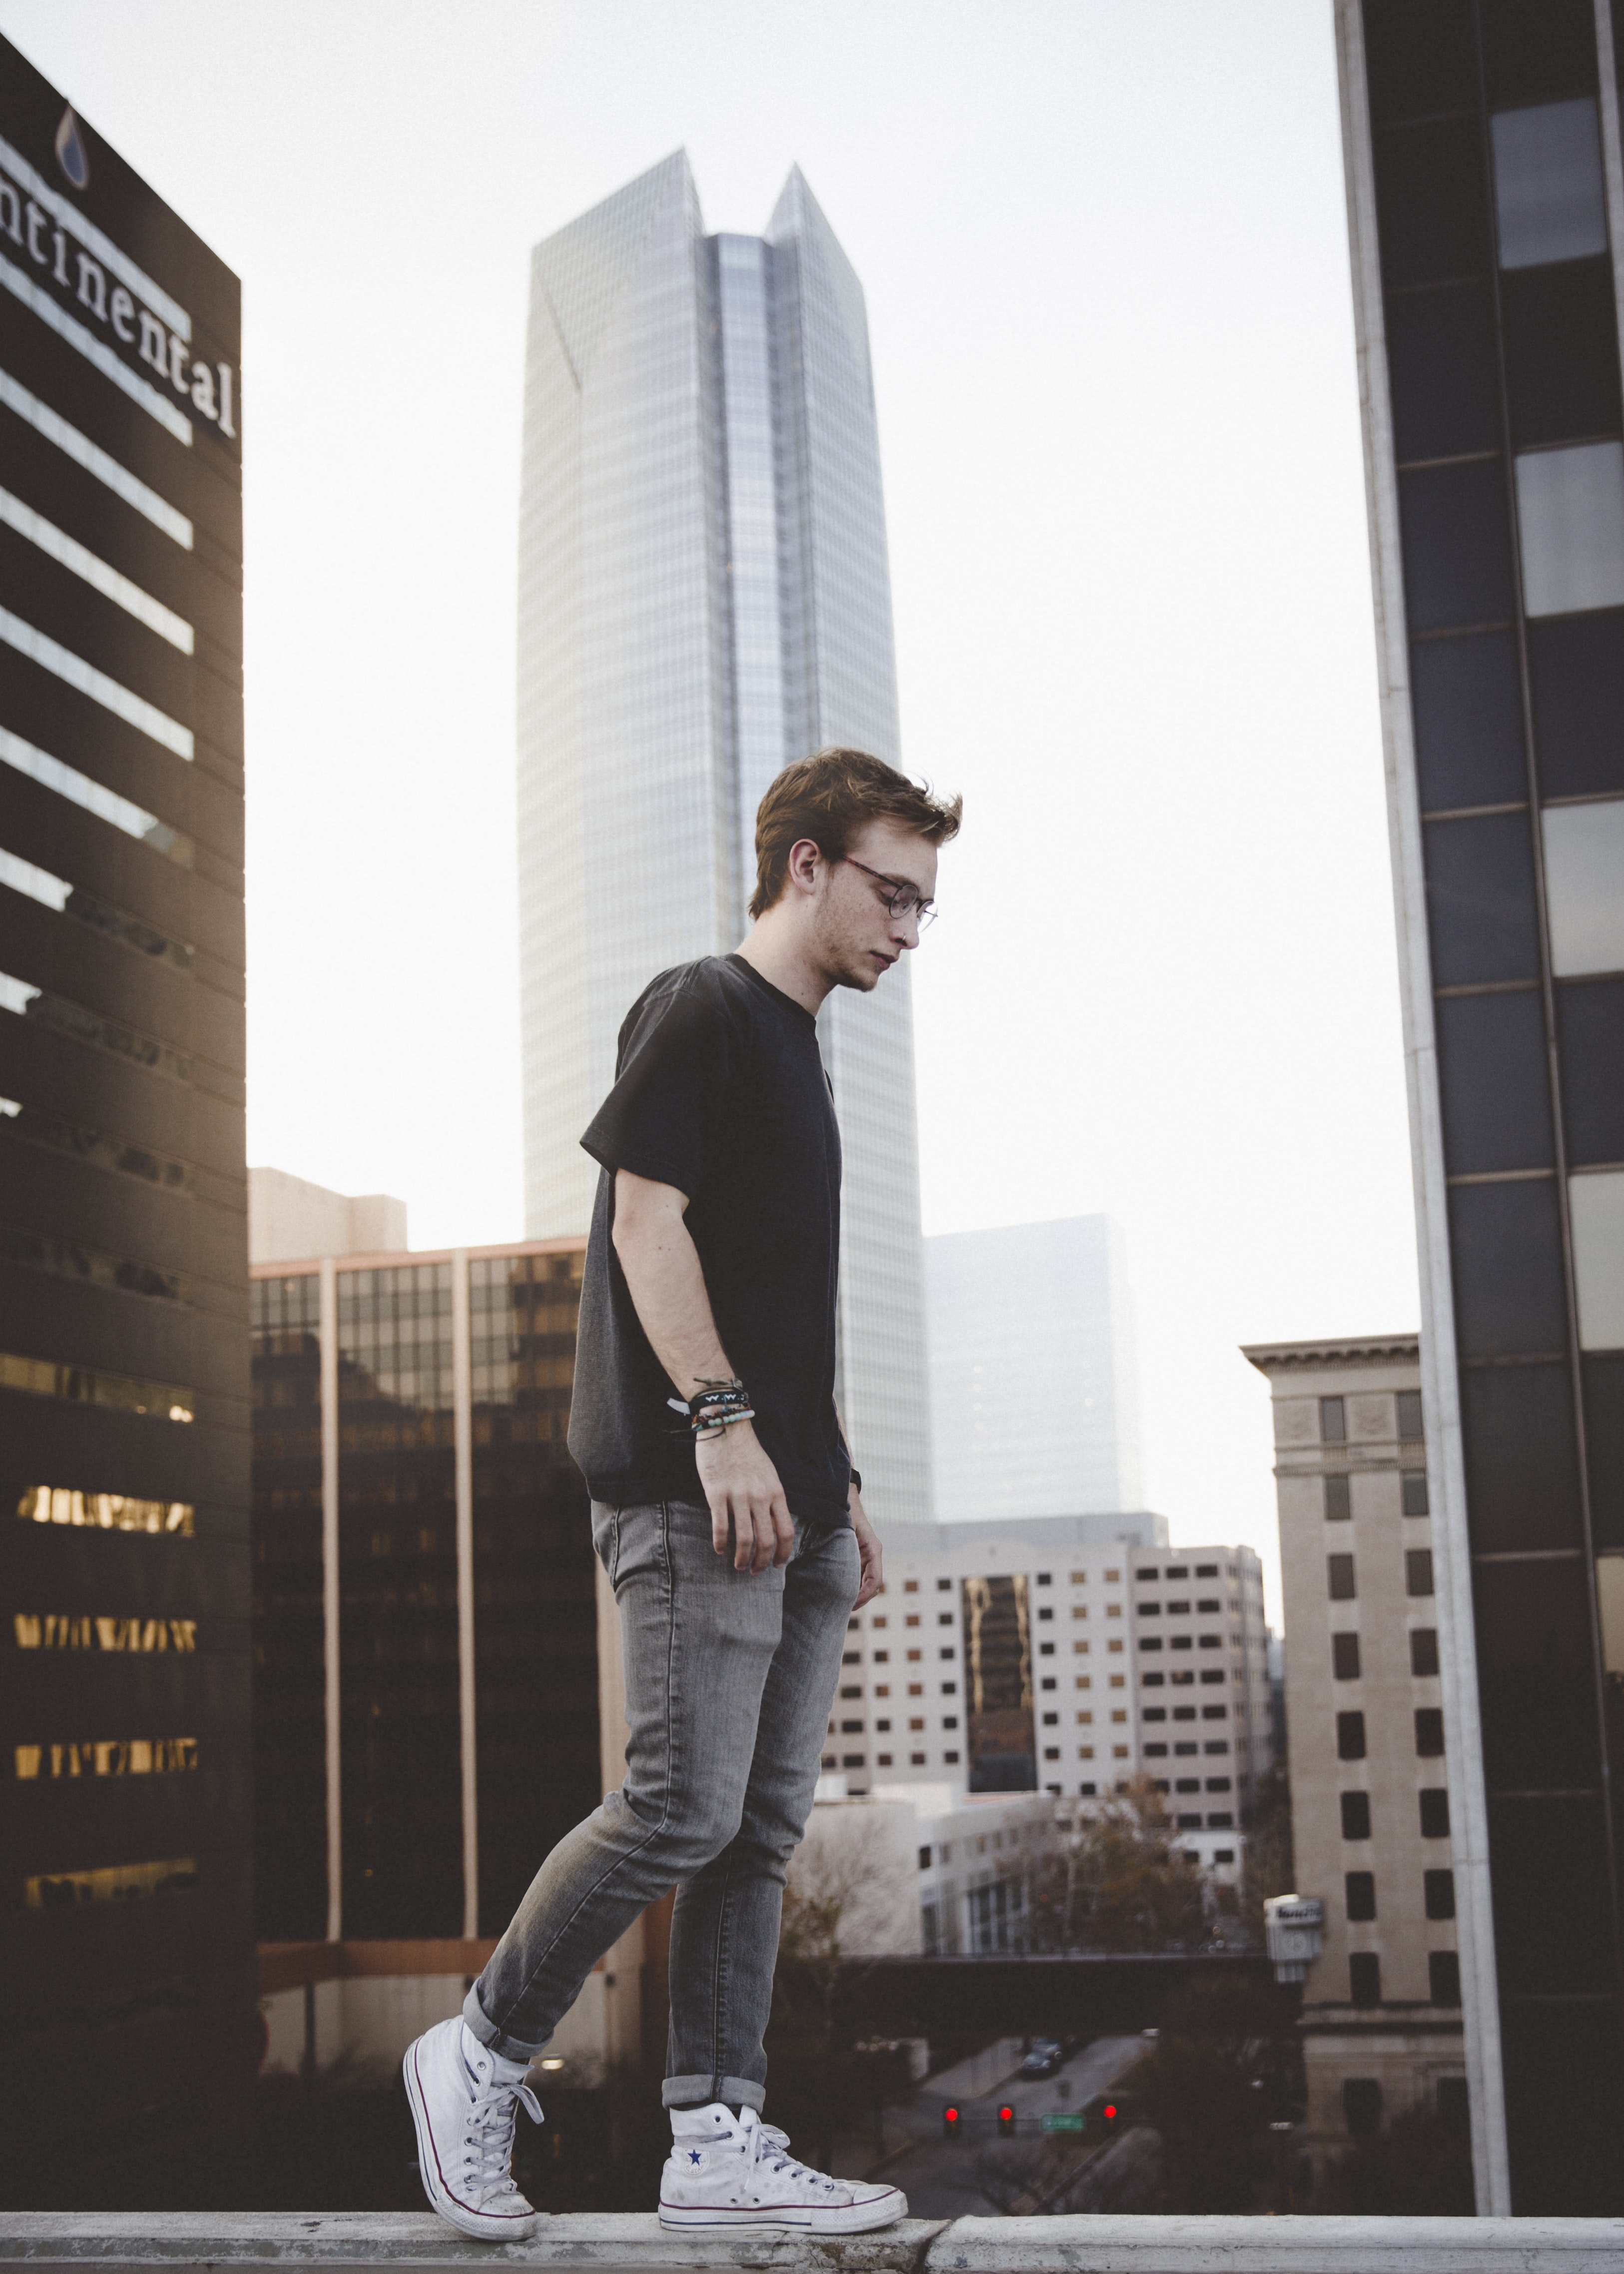 man standing on ledge surrounded by buildings